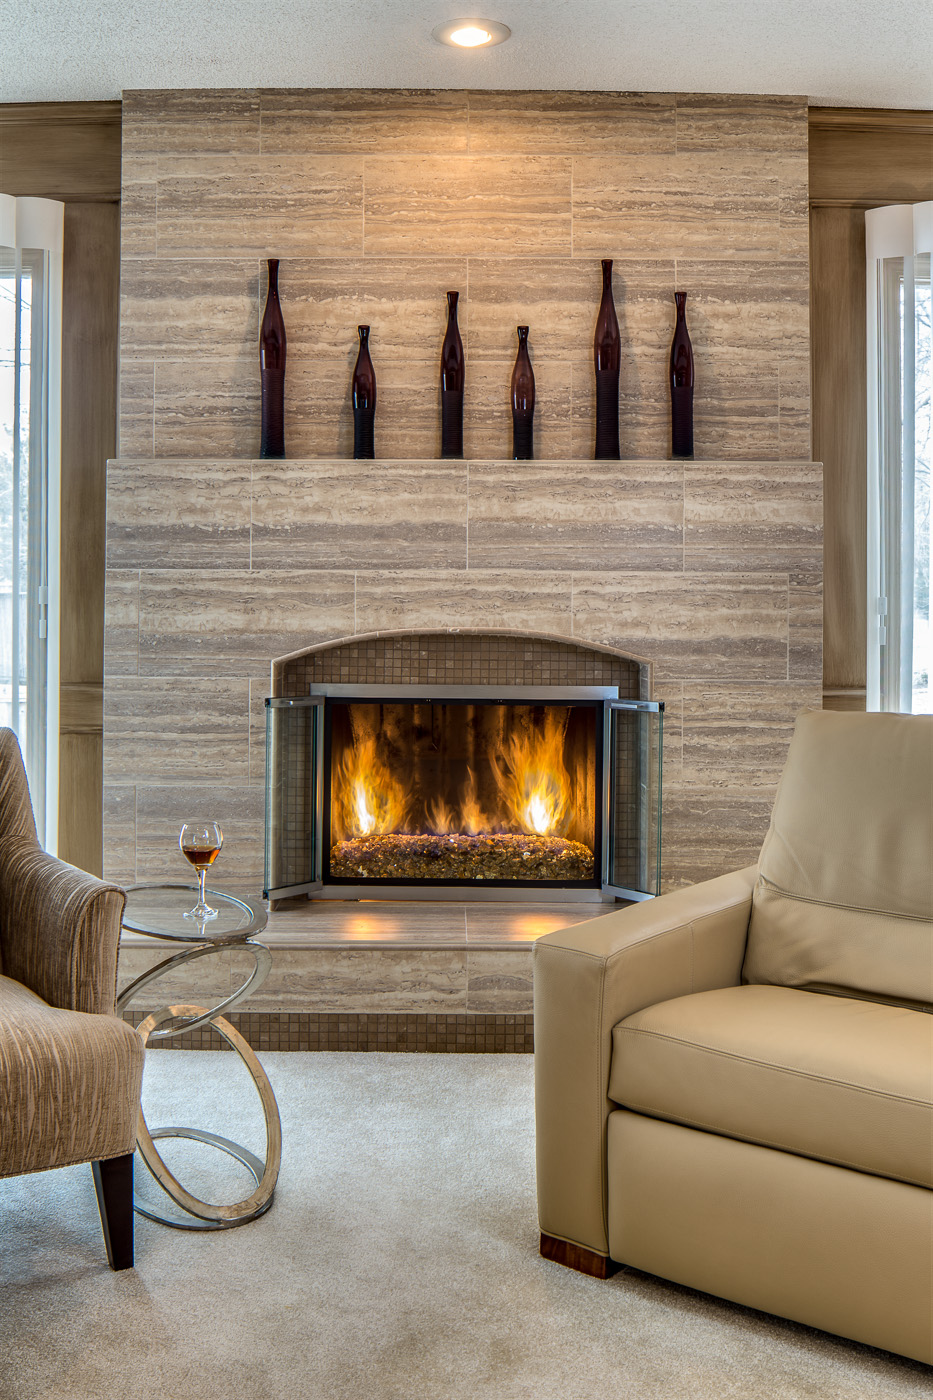 Stone tile fireplace remodel Design Connection Kansas City Interior Design